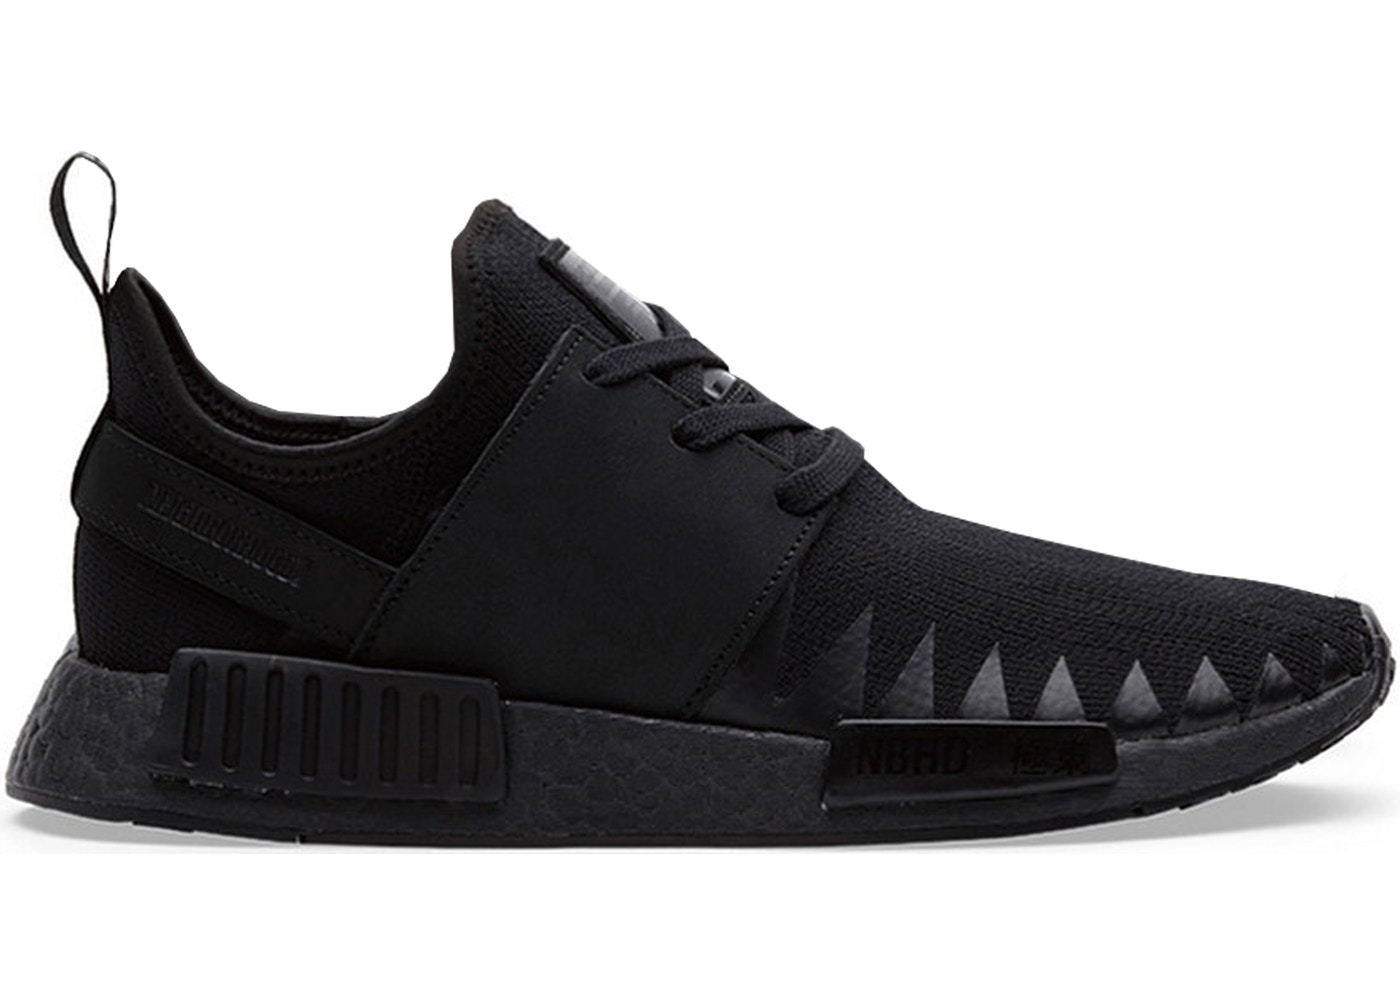 adidas nmd r1 neighborhood triple black. Black Bedroom Furniture Sets. Home Design Ideas